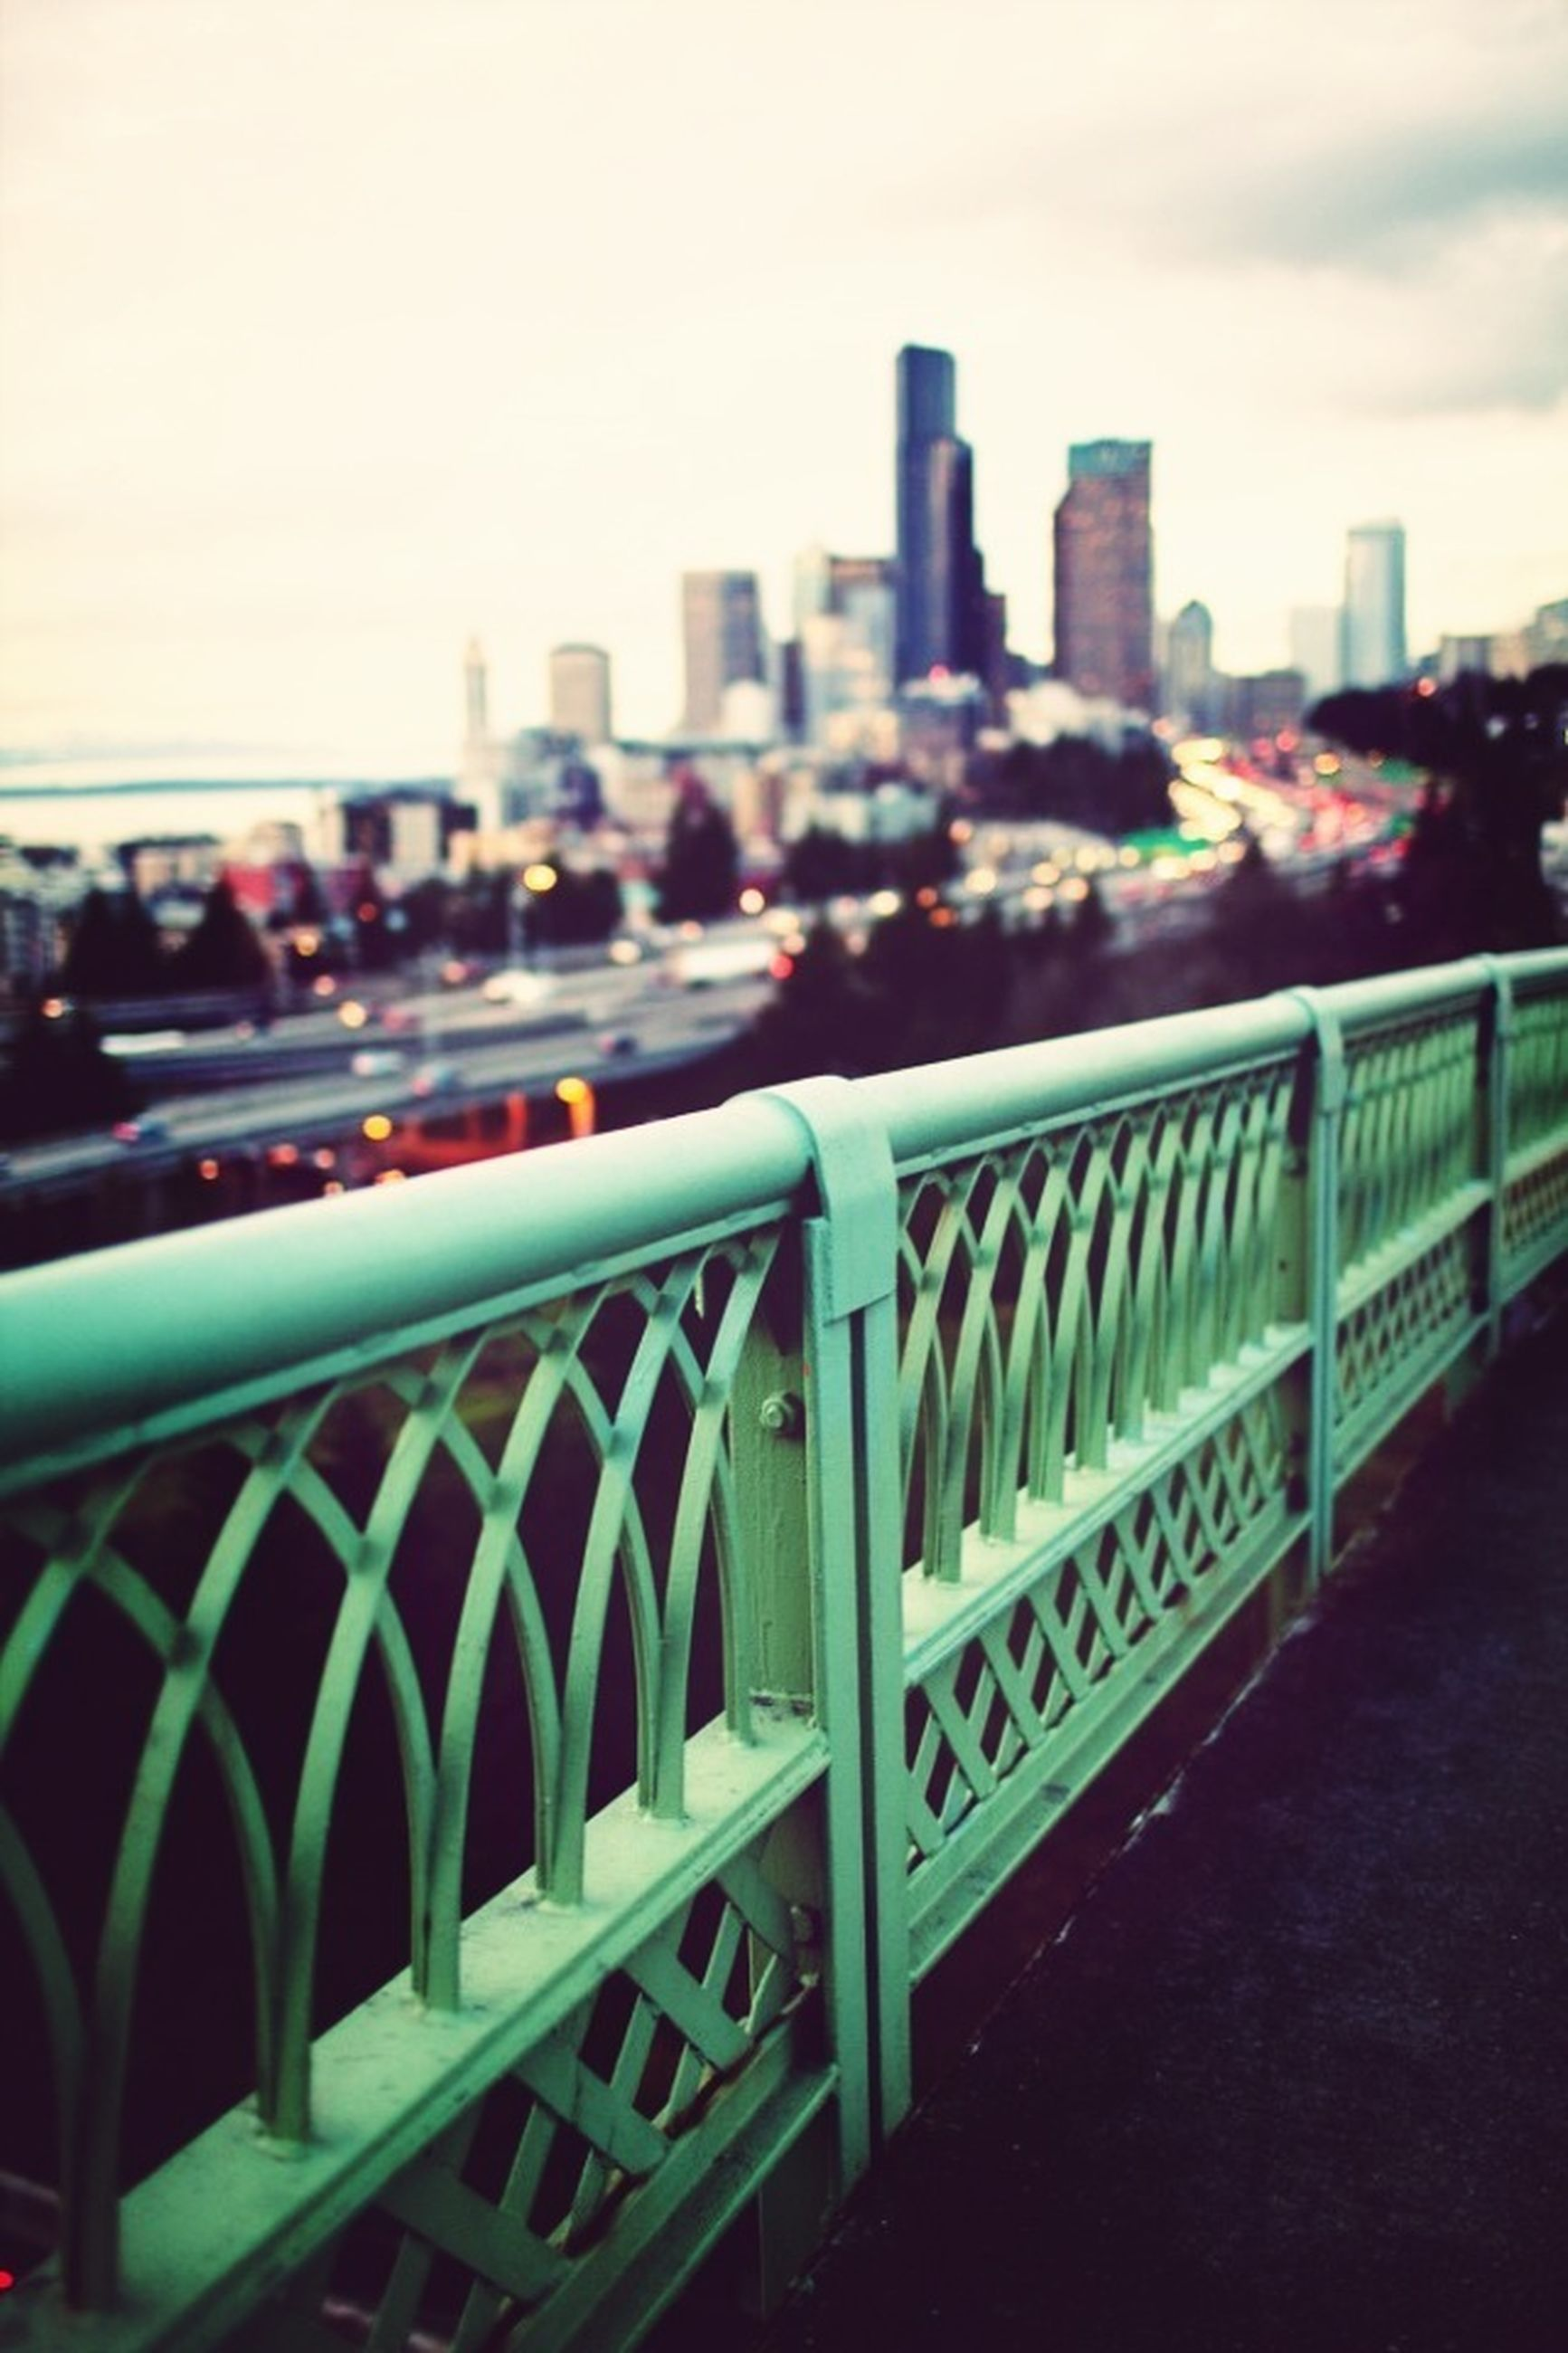 railing, city, architecture, built structure, building exterior, focus on foreground, bridge - man made structure, cityscape, metal, sky, river, fence, connection, bridge, city life, outdoors, day, selective focus, skyscraper, no people